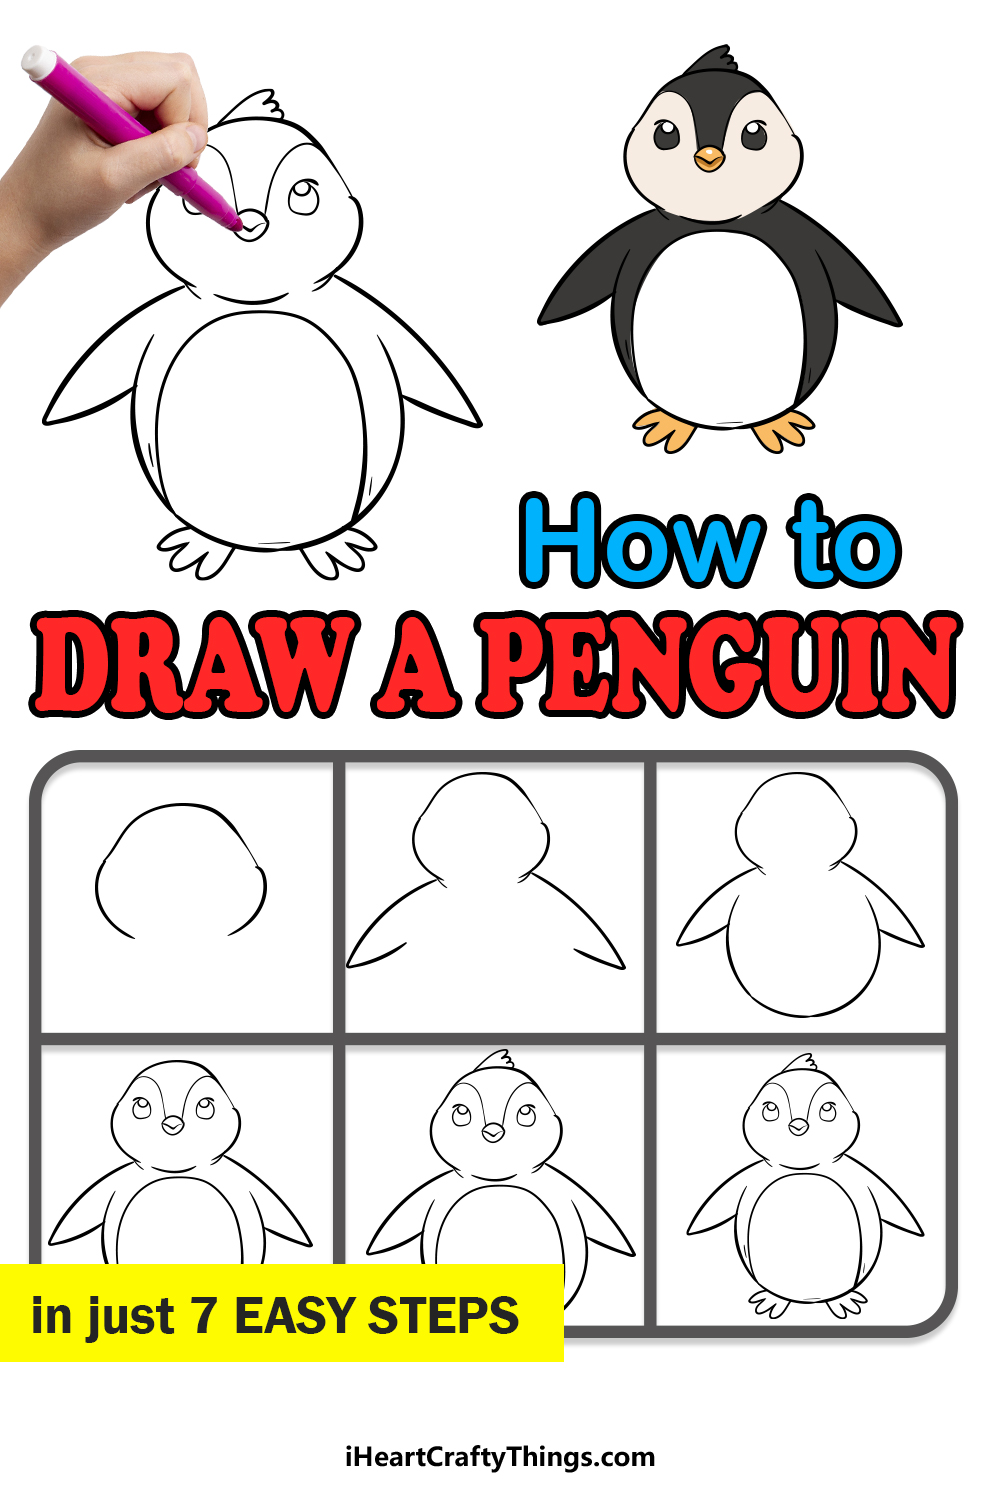 how to draw a penguin in 7 easy step